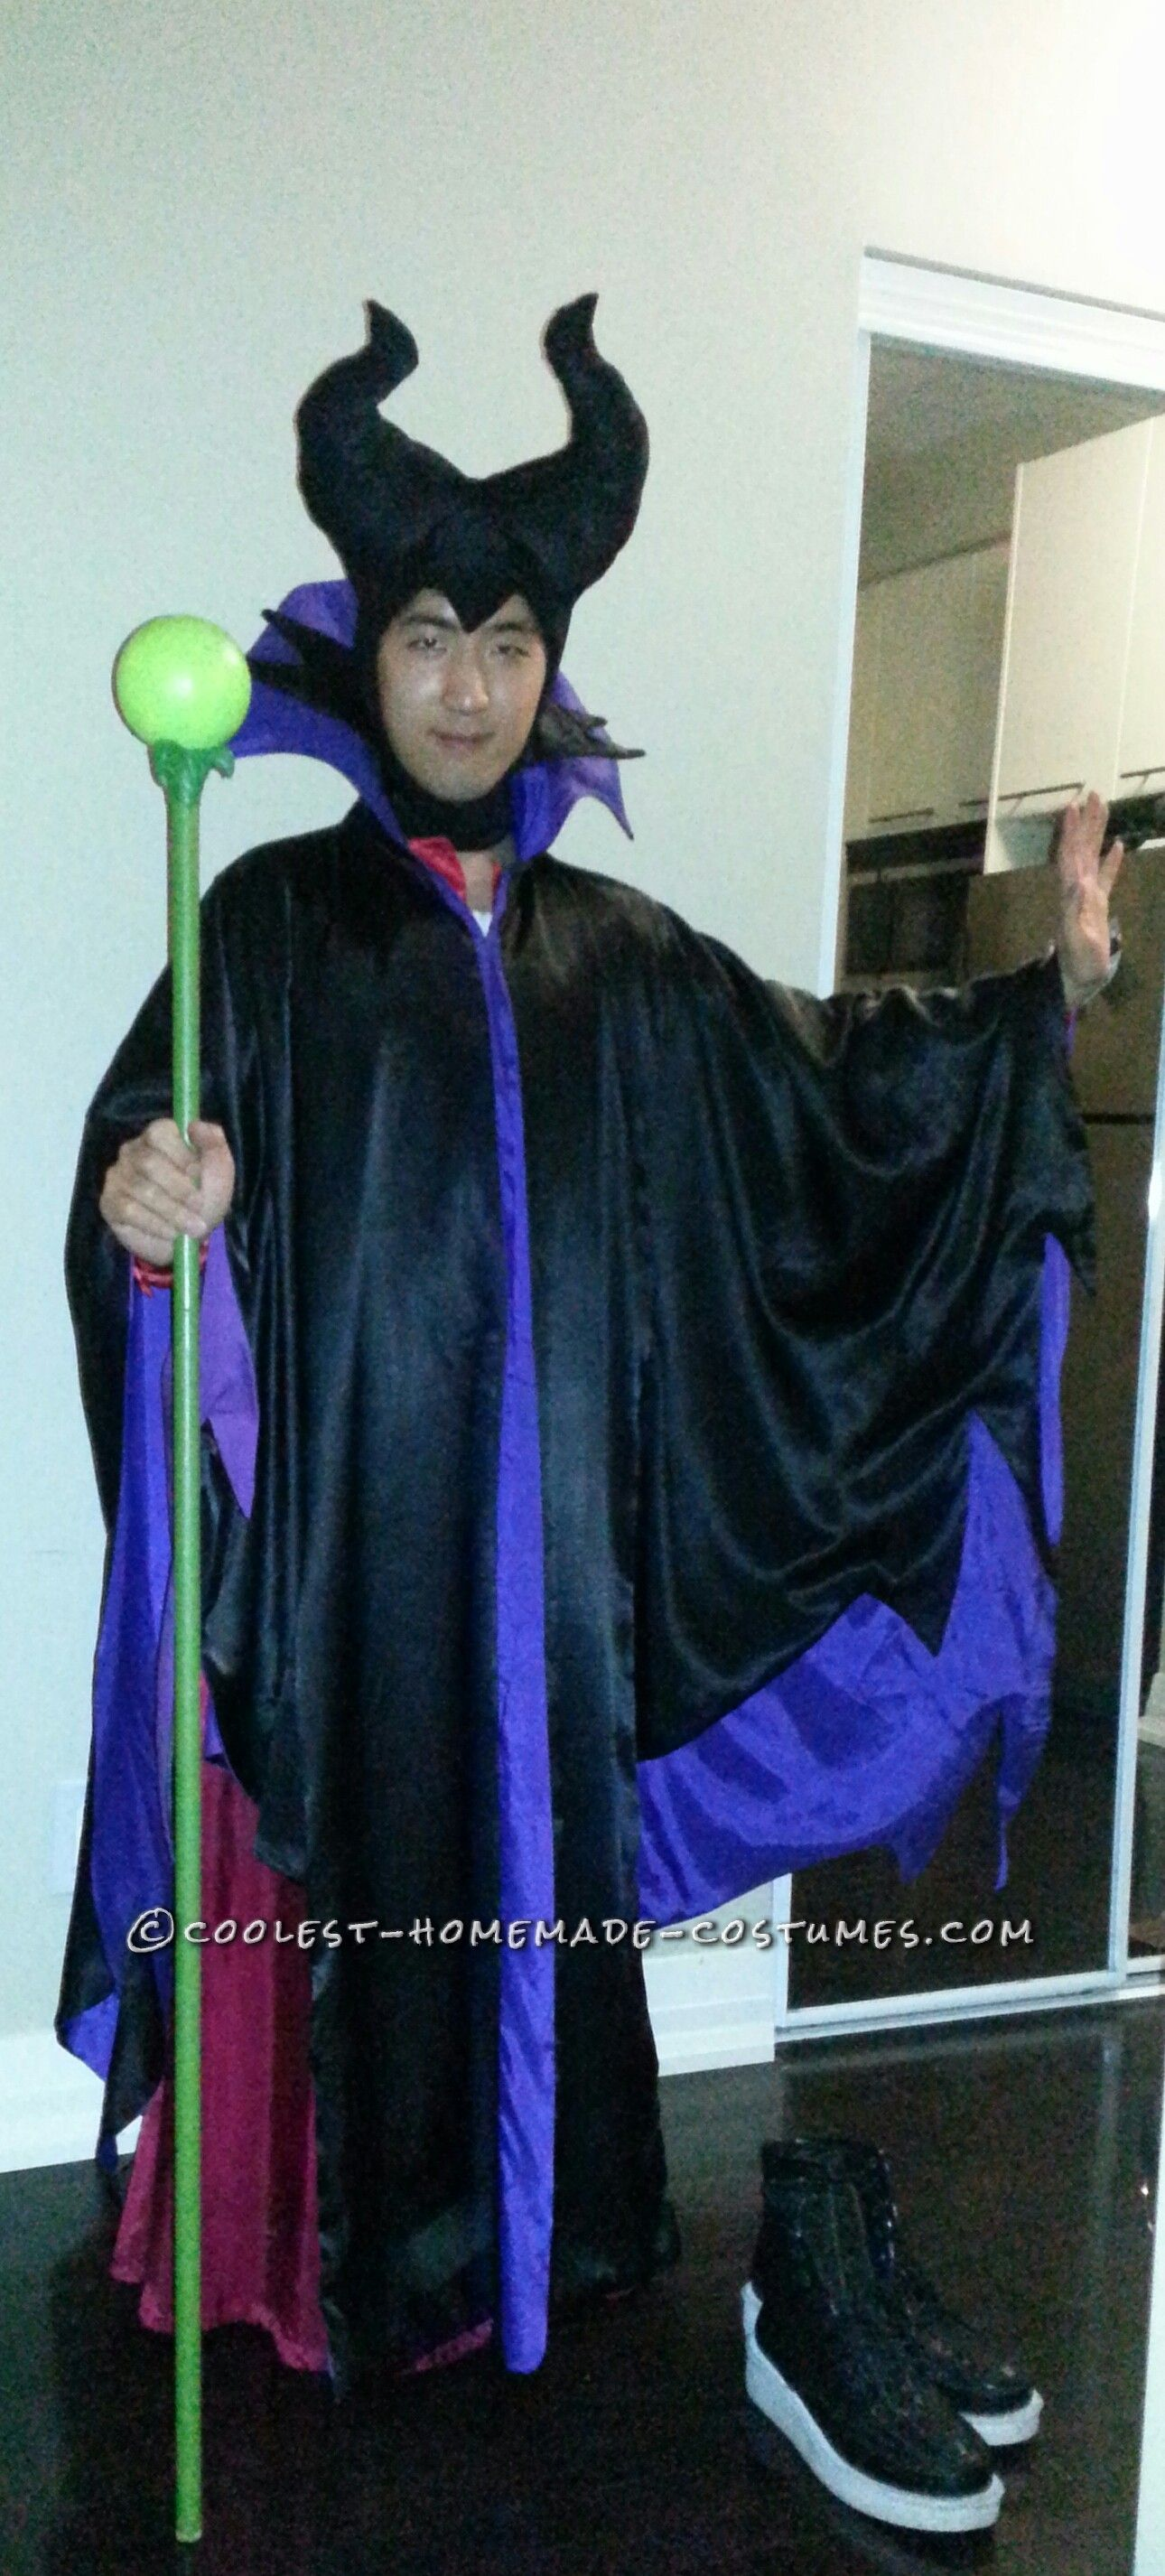 cool diy maleficent costume for a man | coolest homemade costumes